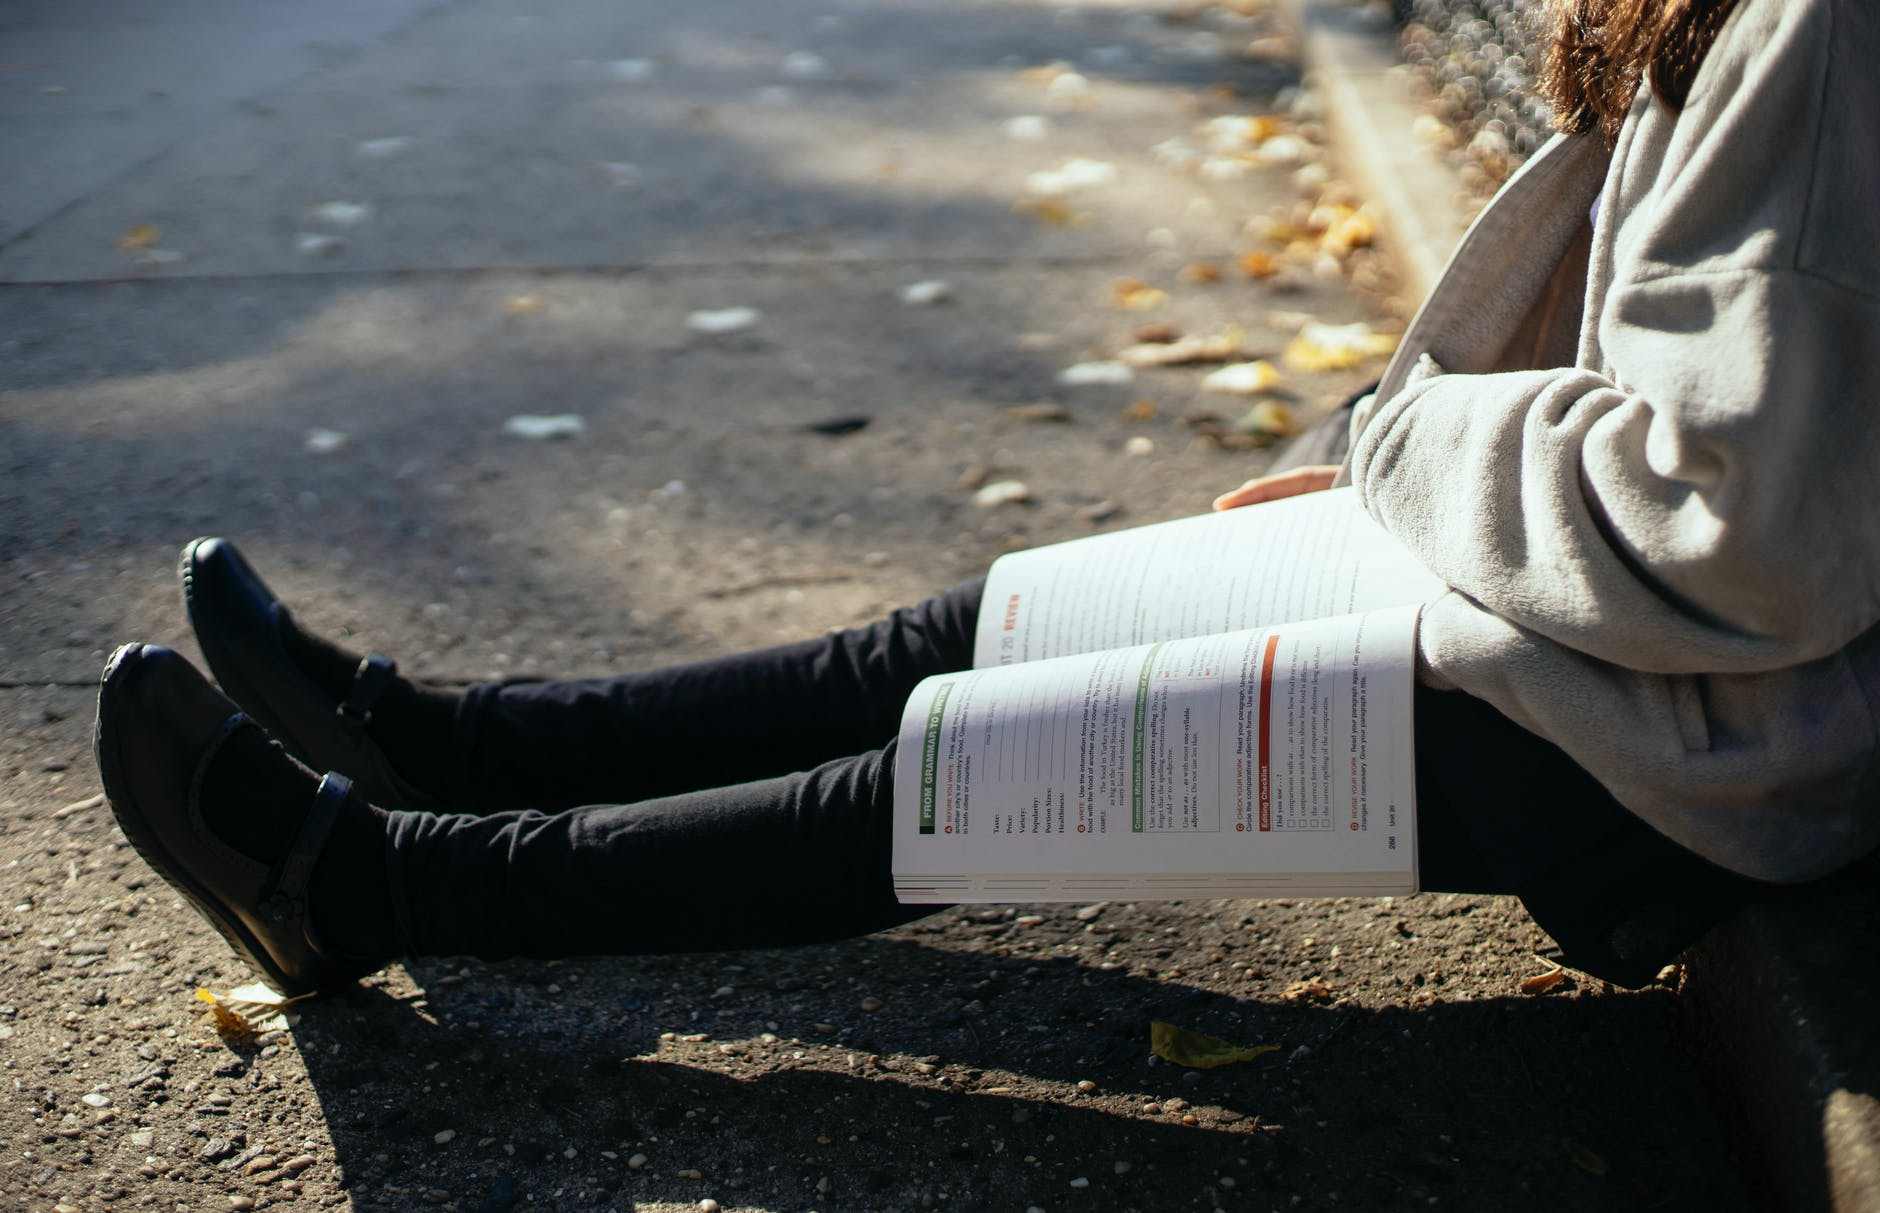 A woman is sat on the pavement curb with a textbook open on her lap.